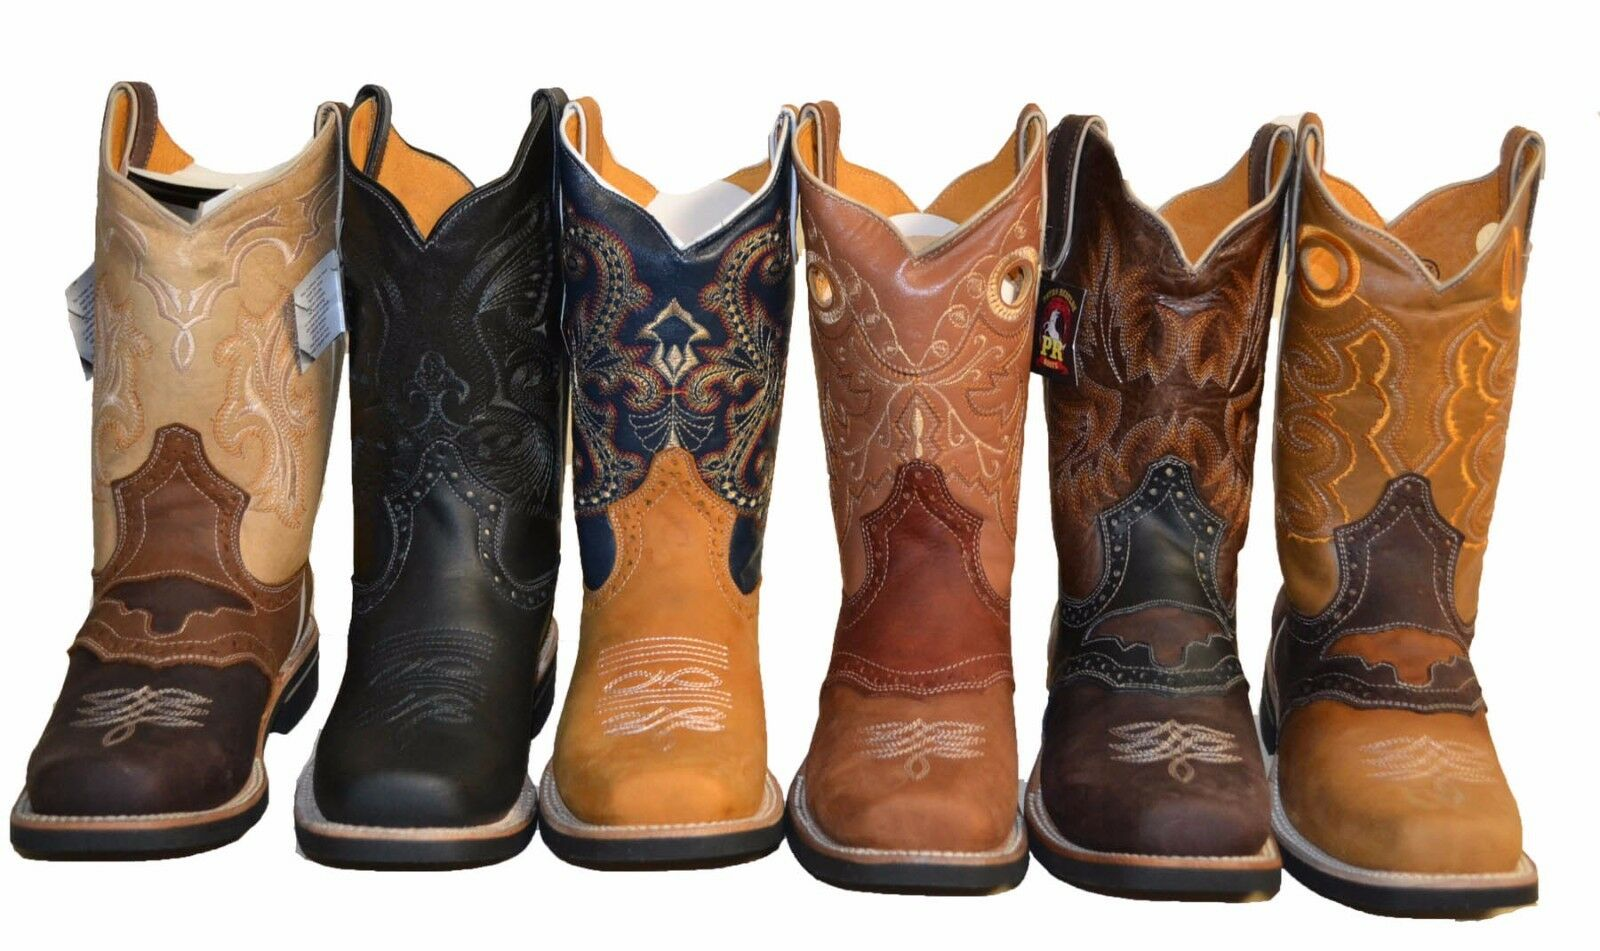 Boots - MEN'S RODEO COWBOY BOOTS GENUINE LEATHER WESTERN SQUARE TOE BOTAS